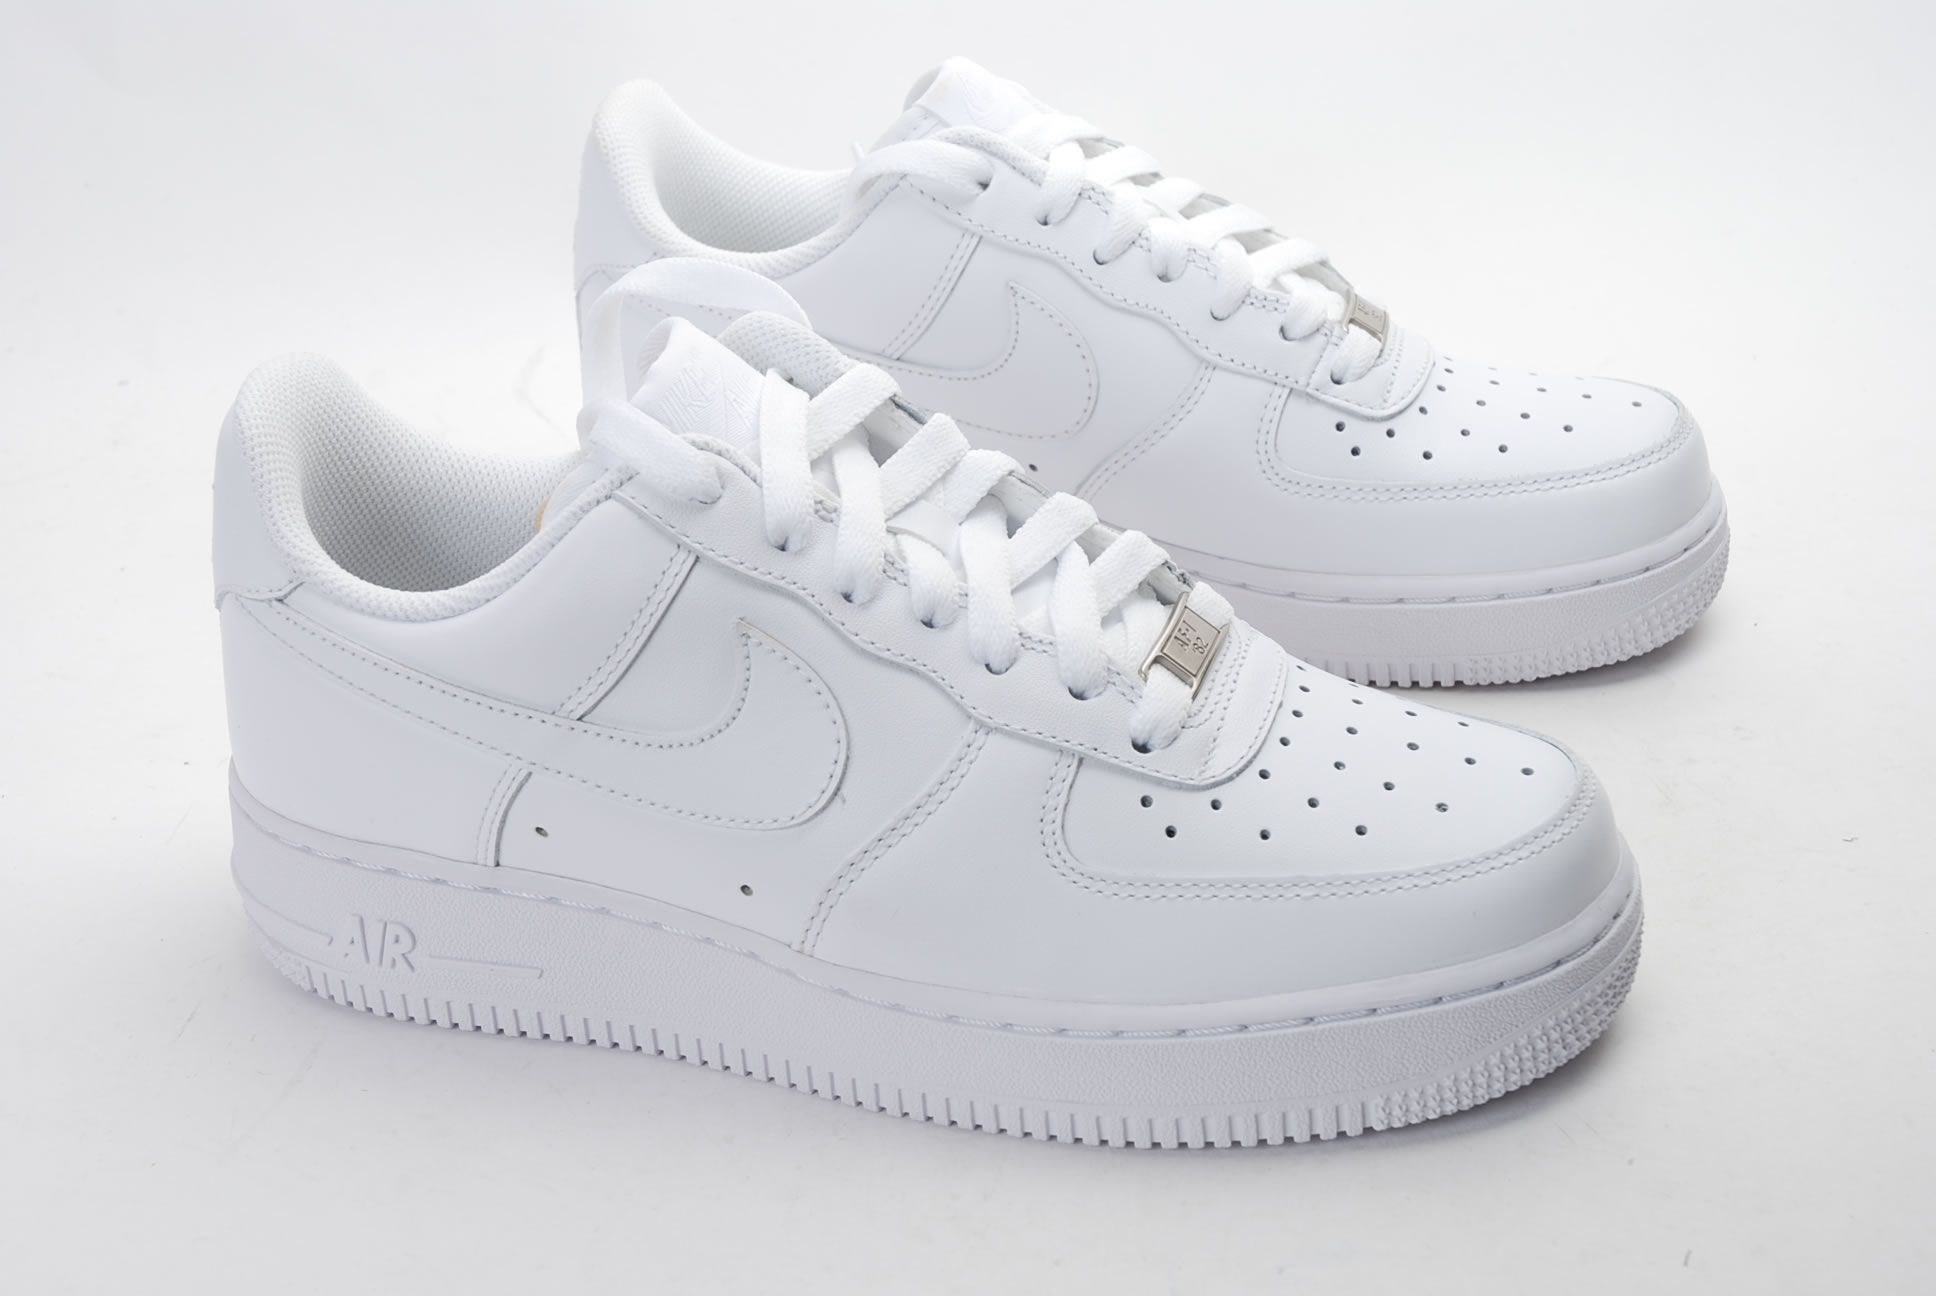 code promo 77362 52f47 Air Force One White | Winter outfits | Chaussures de basket ...